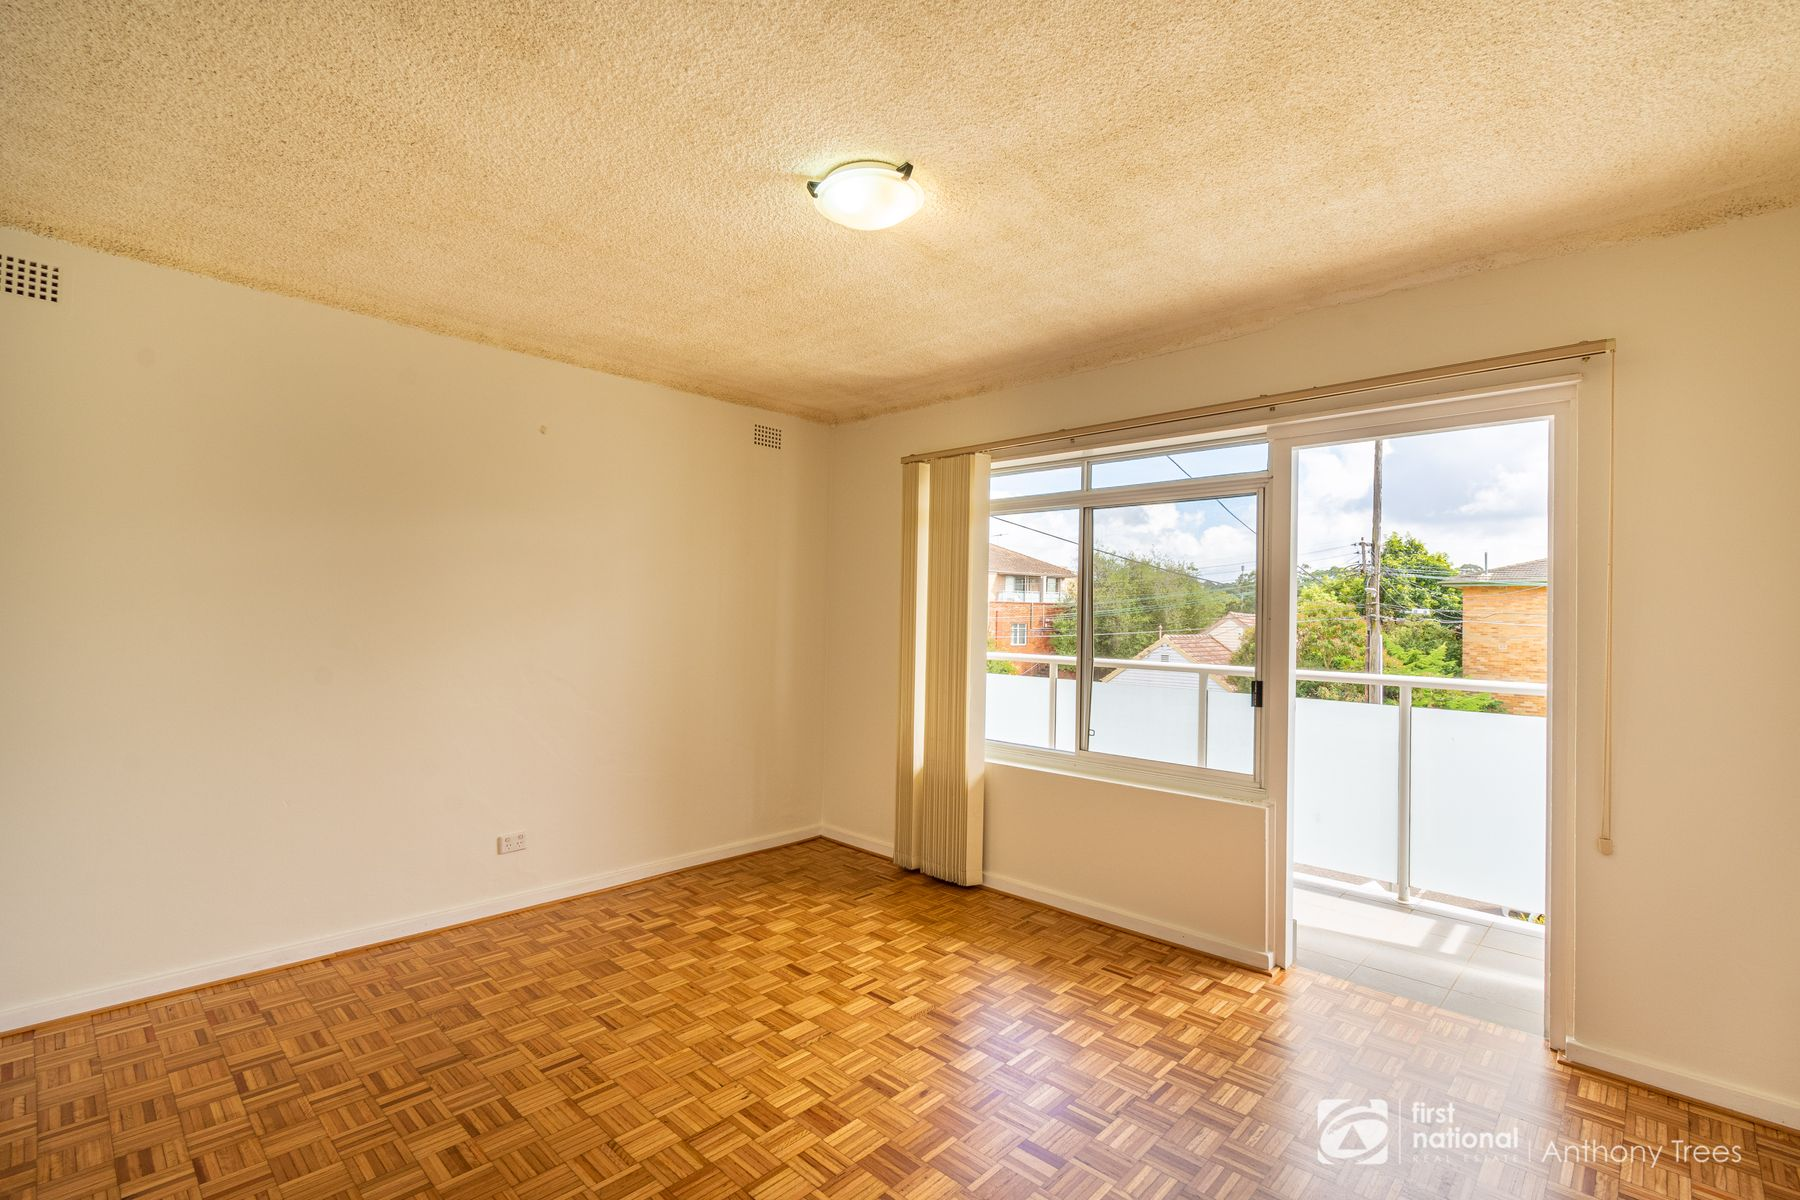 15/11-13 Ethel Street, Eastwood, NSW 2122